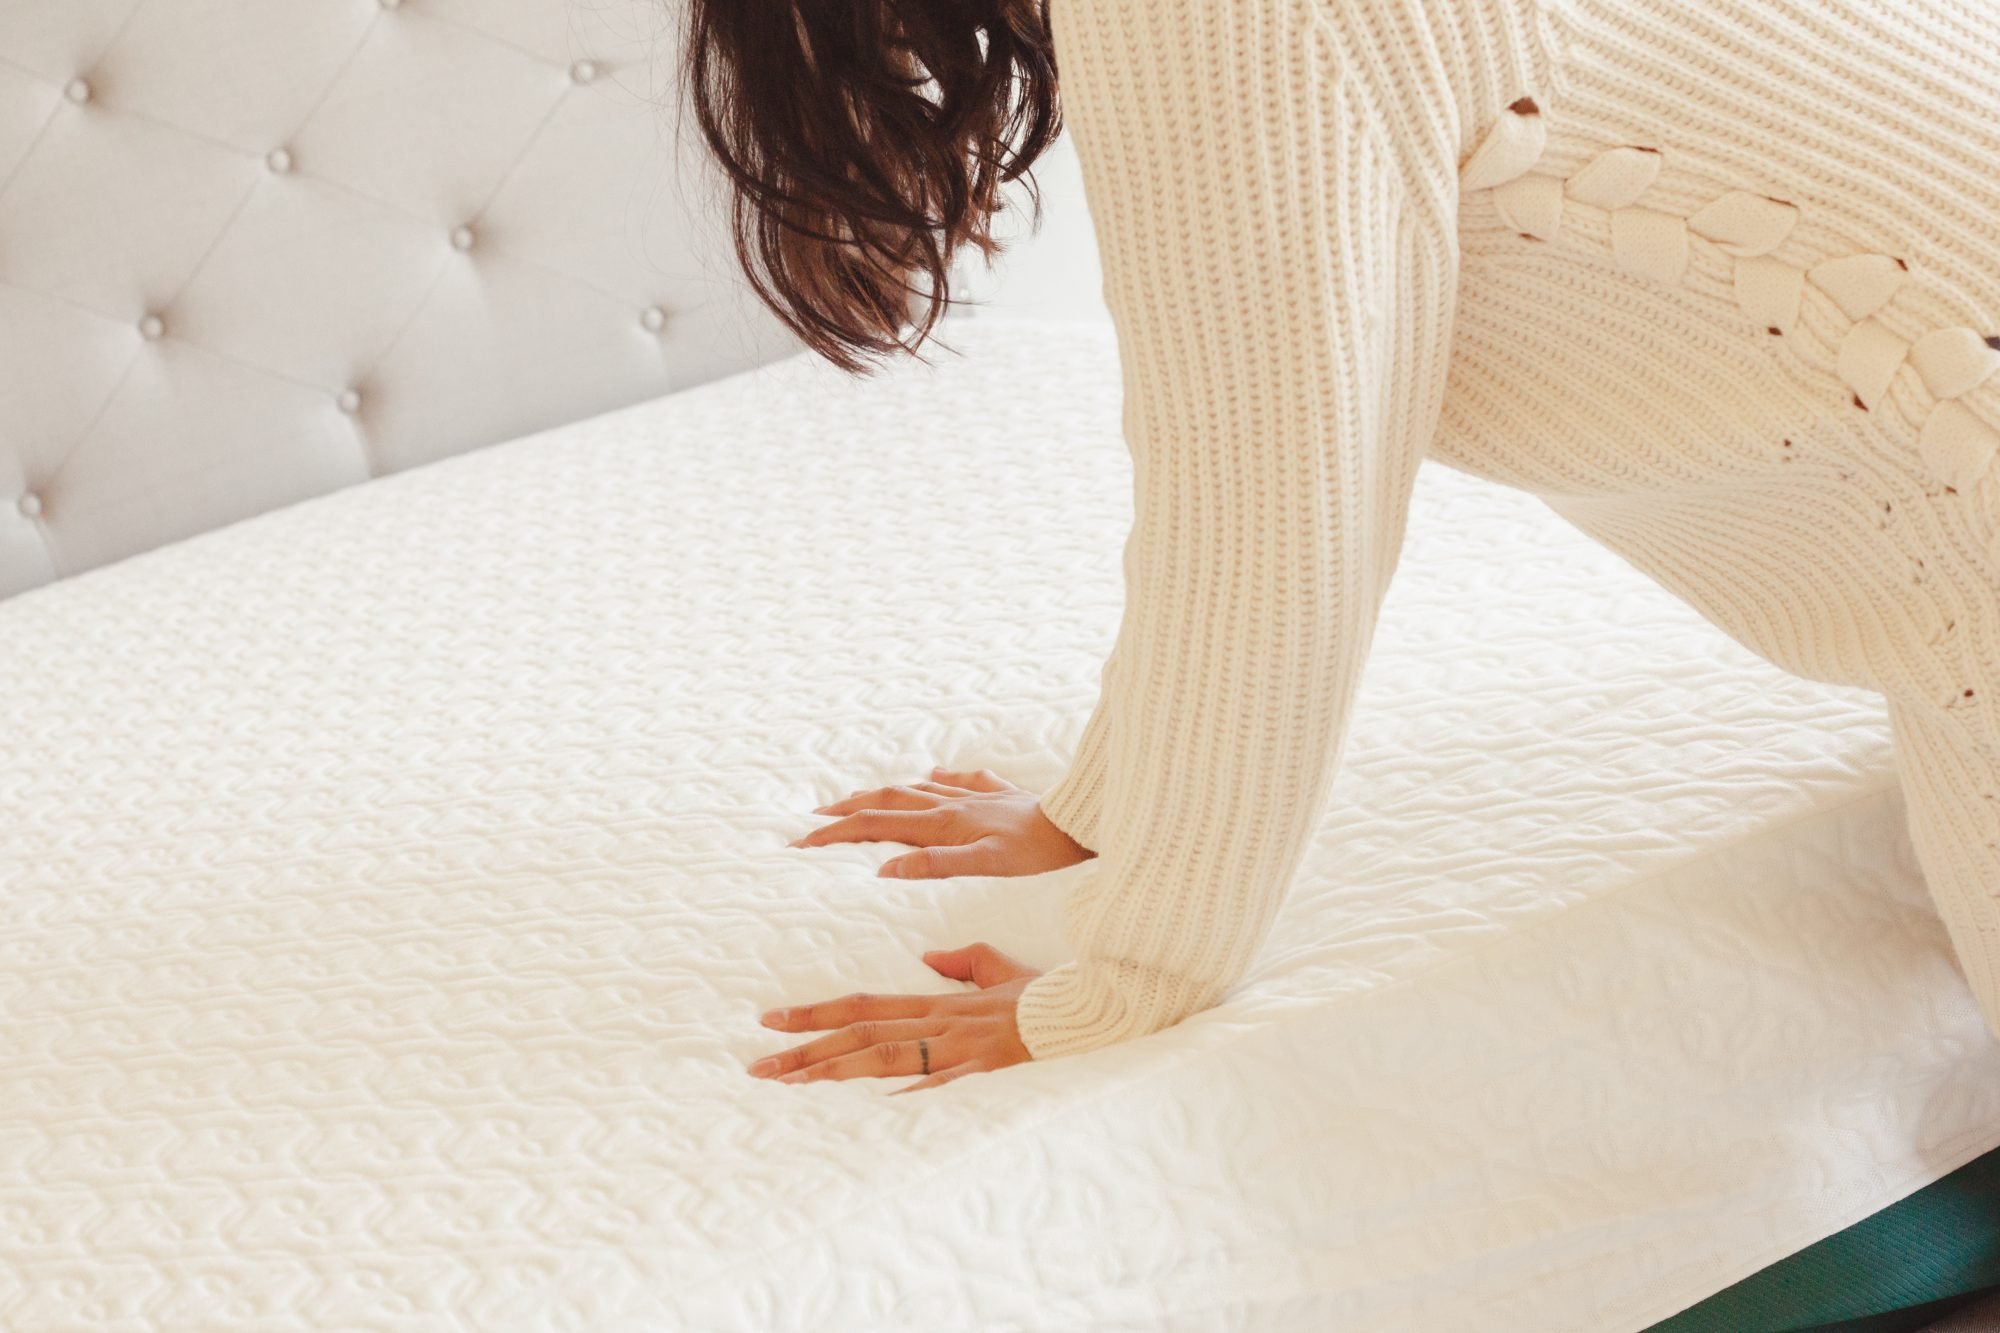 Overall, I'm extremely impressed with the pricing, variety, and quality of my Zinus mattress. I'd gladly get another one for my guest bedroom - maybe the Green Tea Memory Foam Mattress for when my best friends who drink a little too much and stay the night? - www.theballeronabudget.com